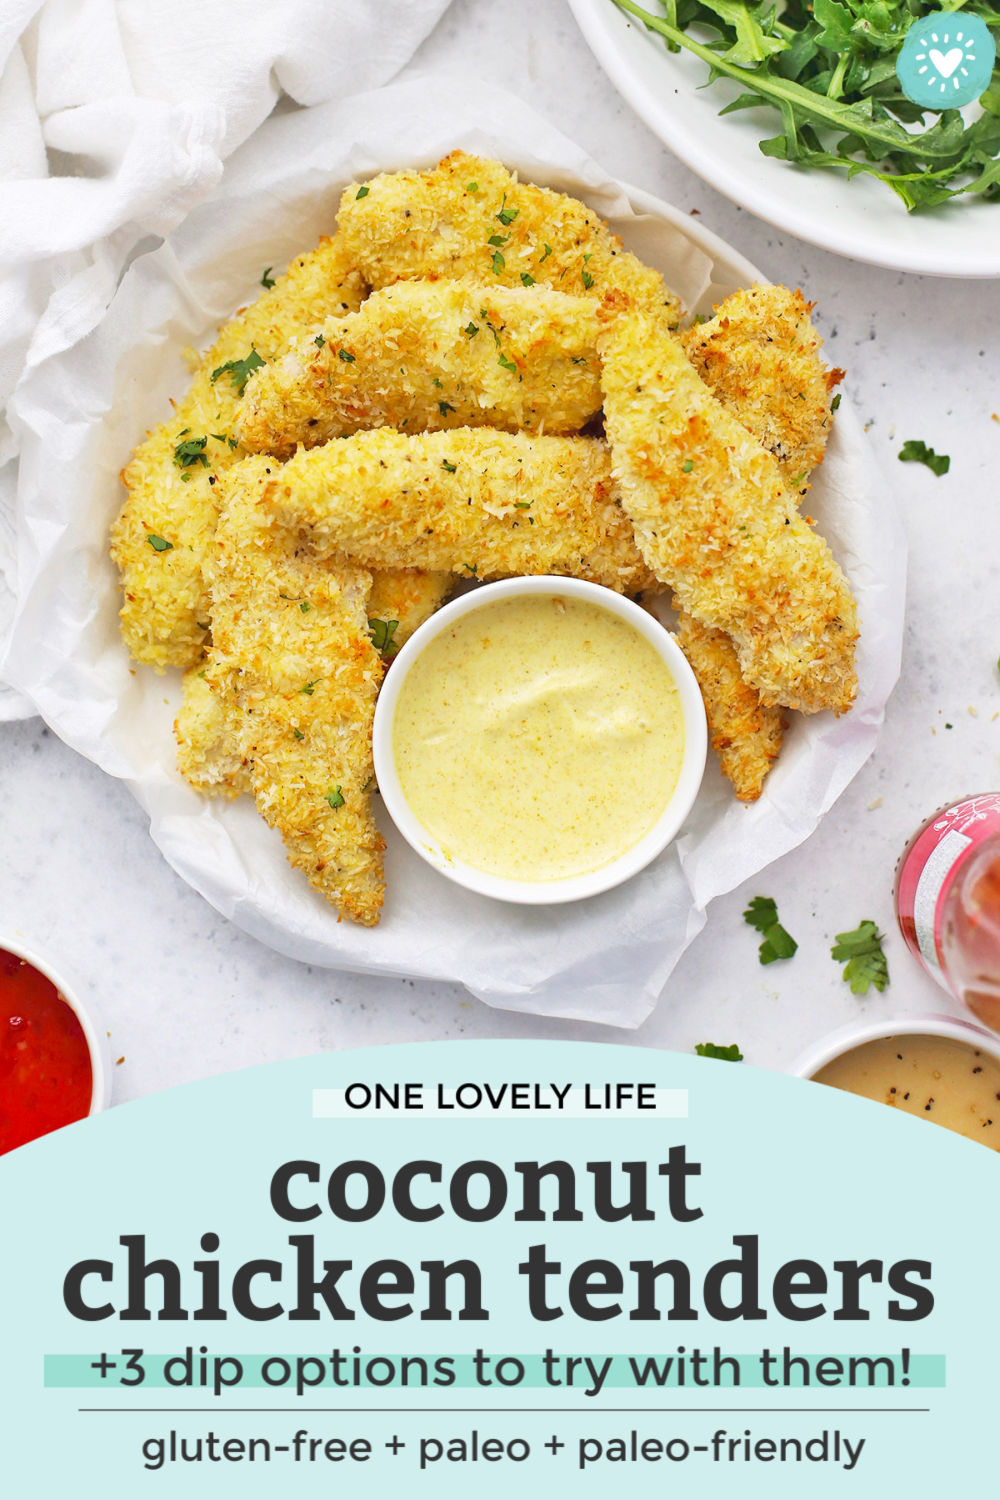 Baked Coconut Chicken Tenders from One Lovely Life